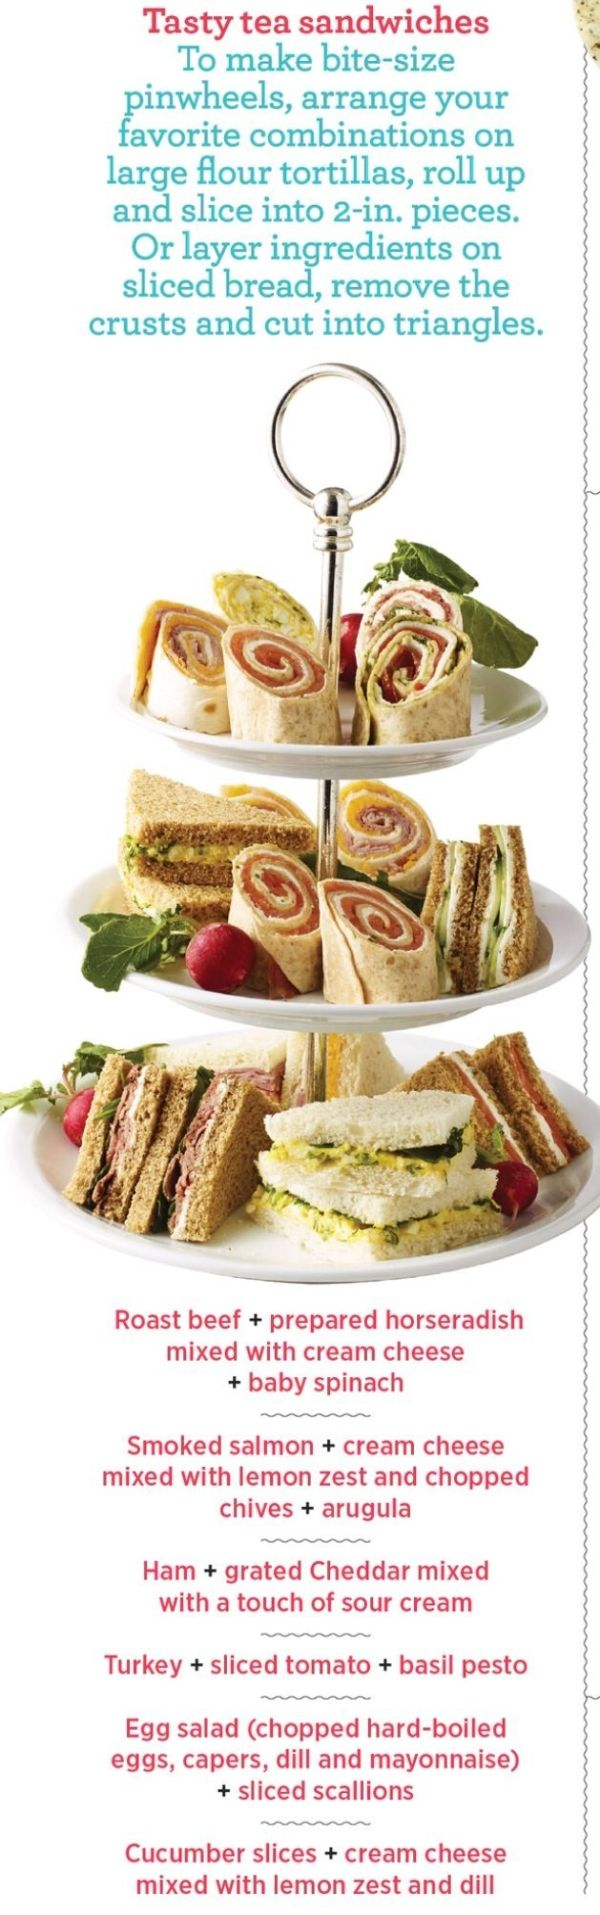 Sandwiches: chicken/turkey salad, cucumber, deviled egg salad, pimento cheese Pinwheel: artichoke dip